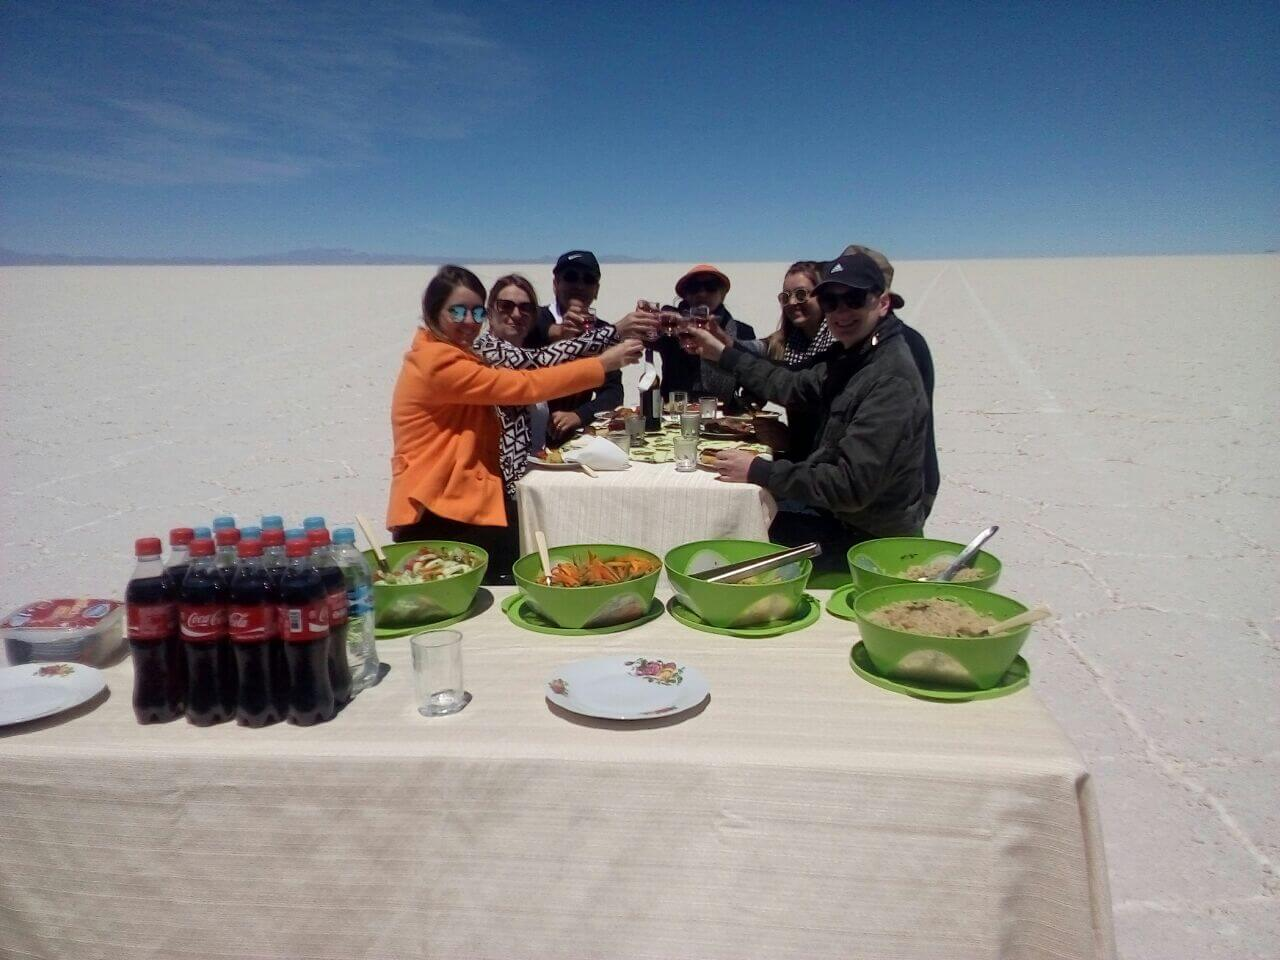 outdoors meal, Uyuni salt flats